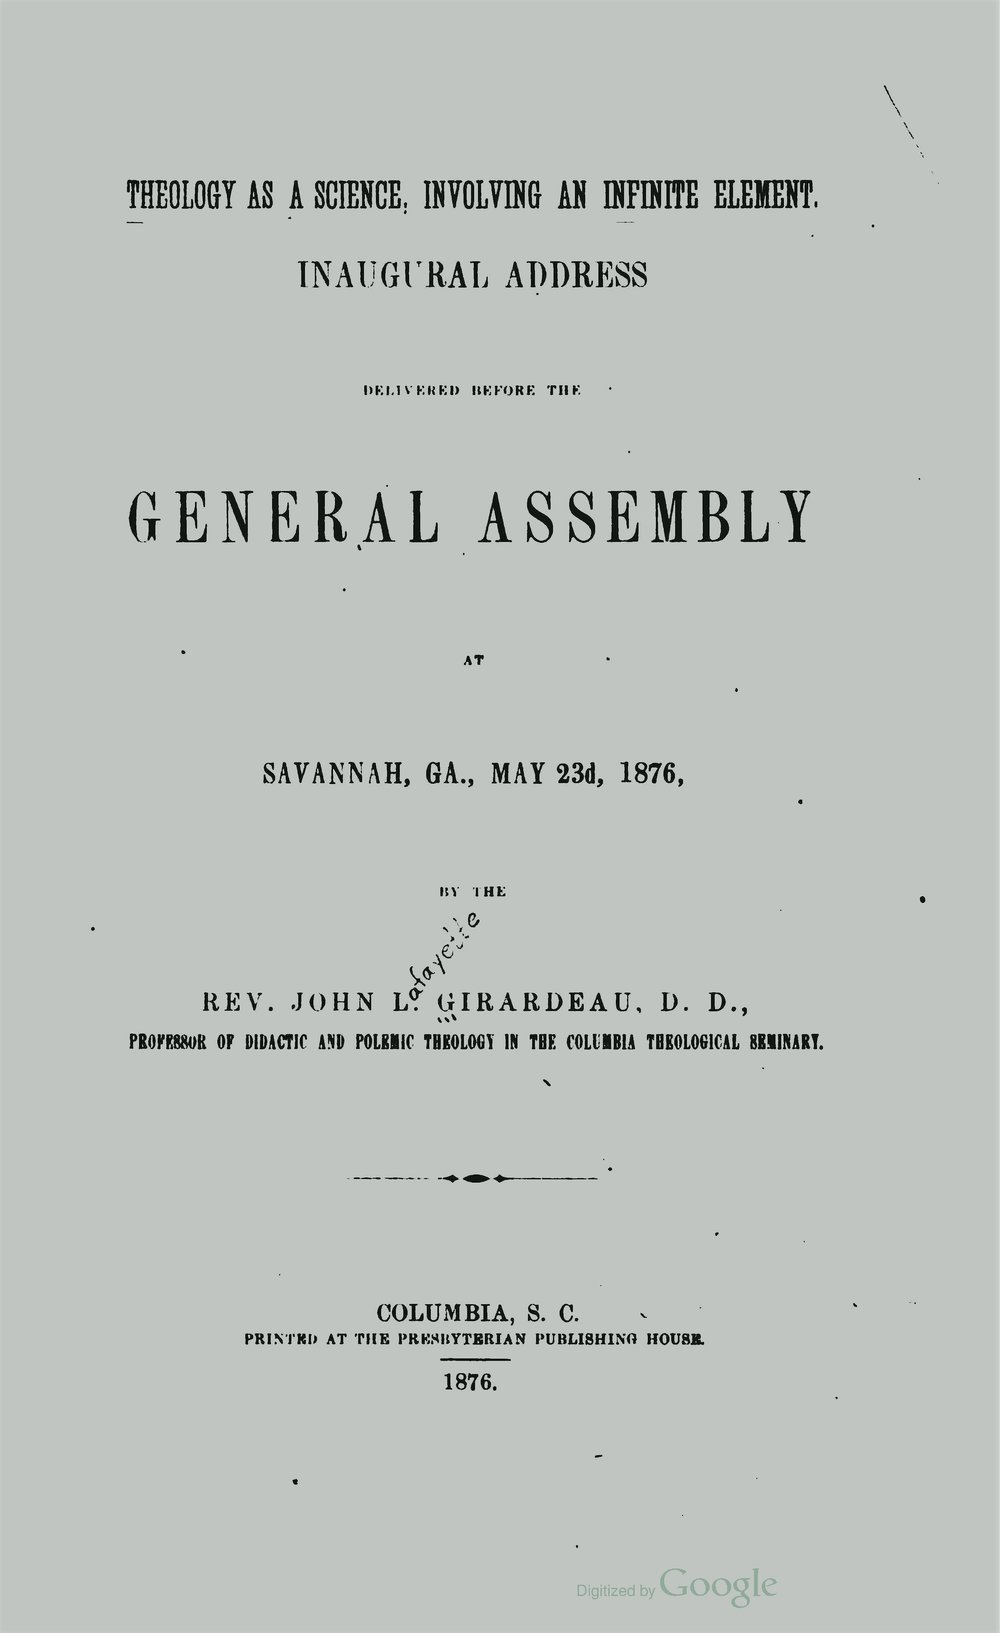 Girardeau, John Lafayette, Theology as a Science Title Page.jpg